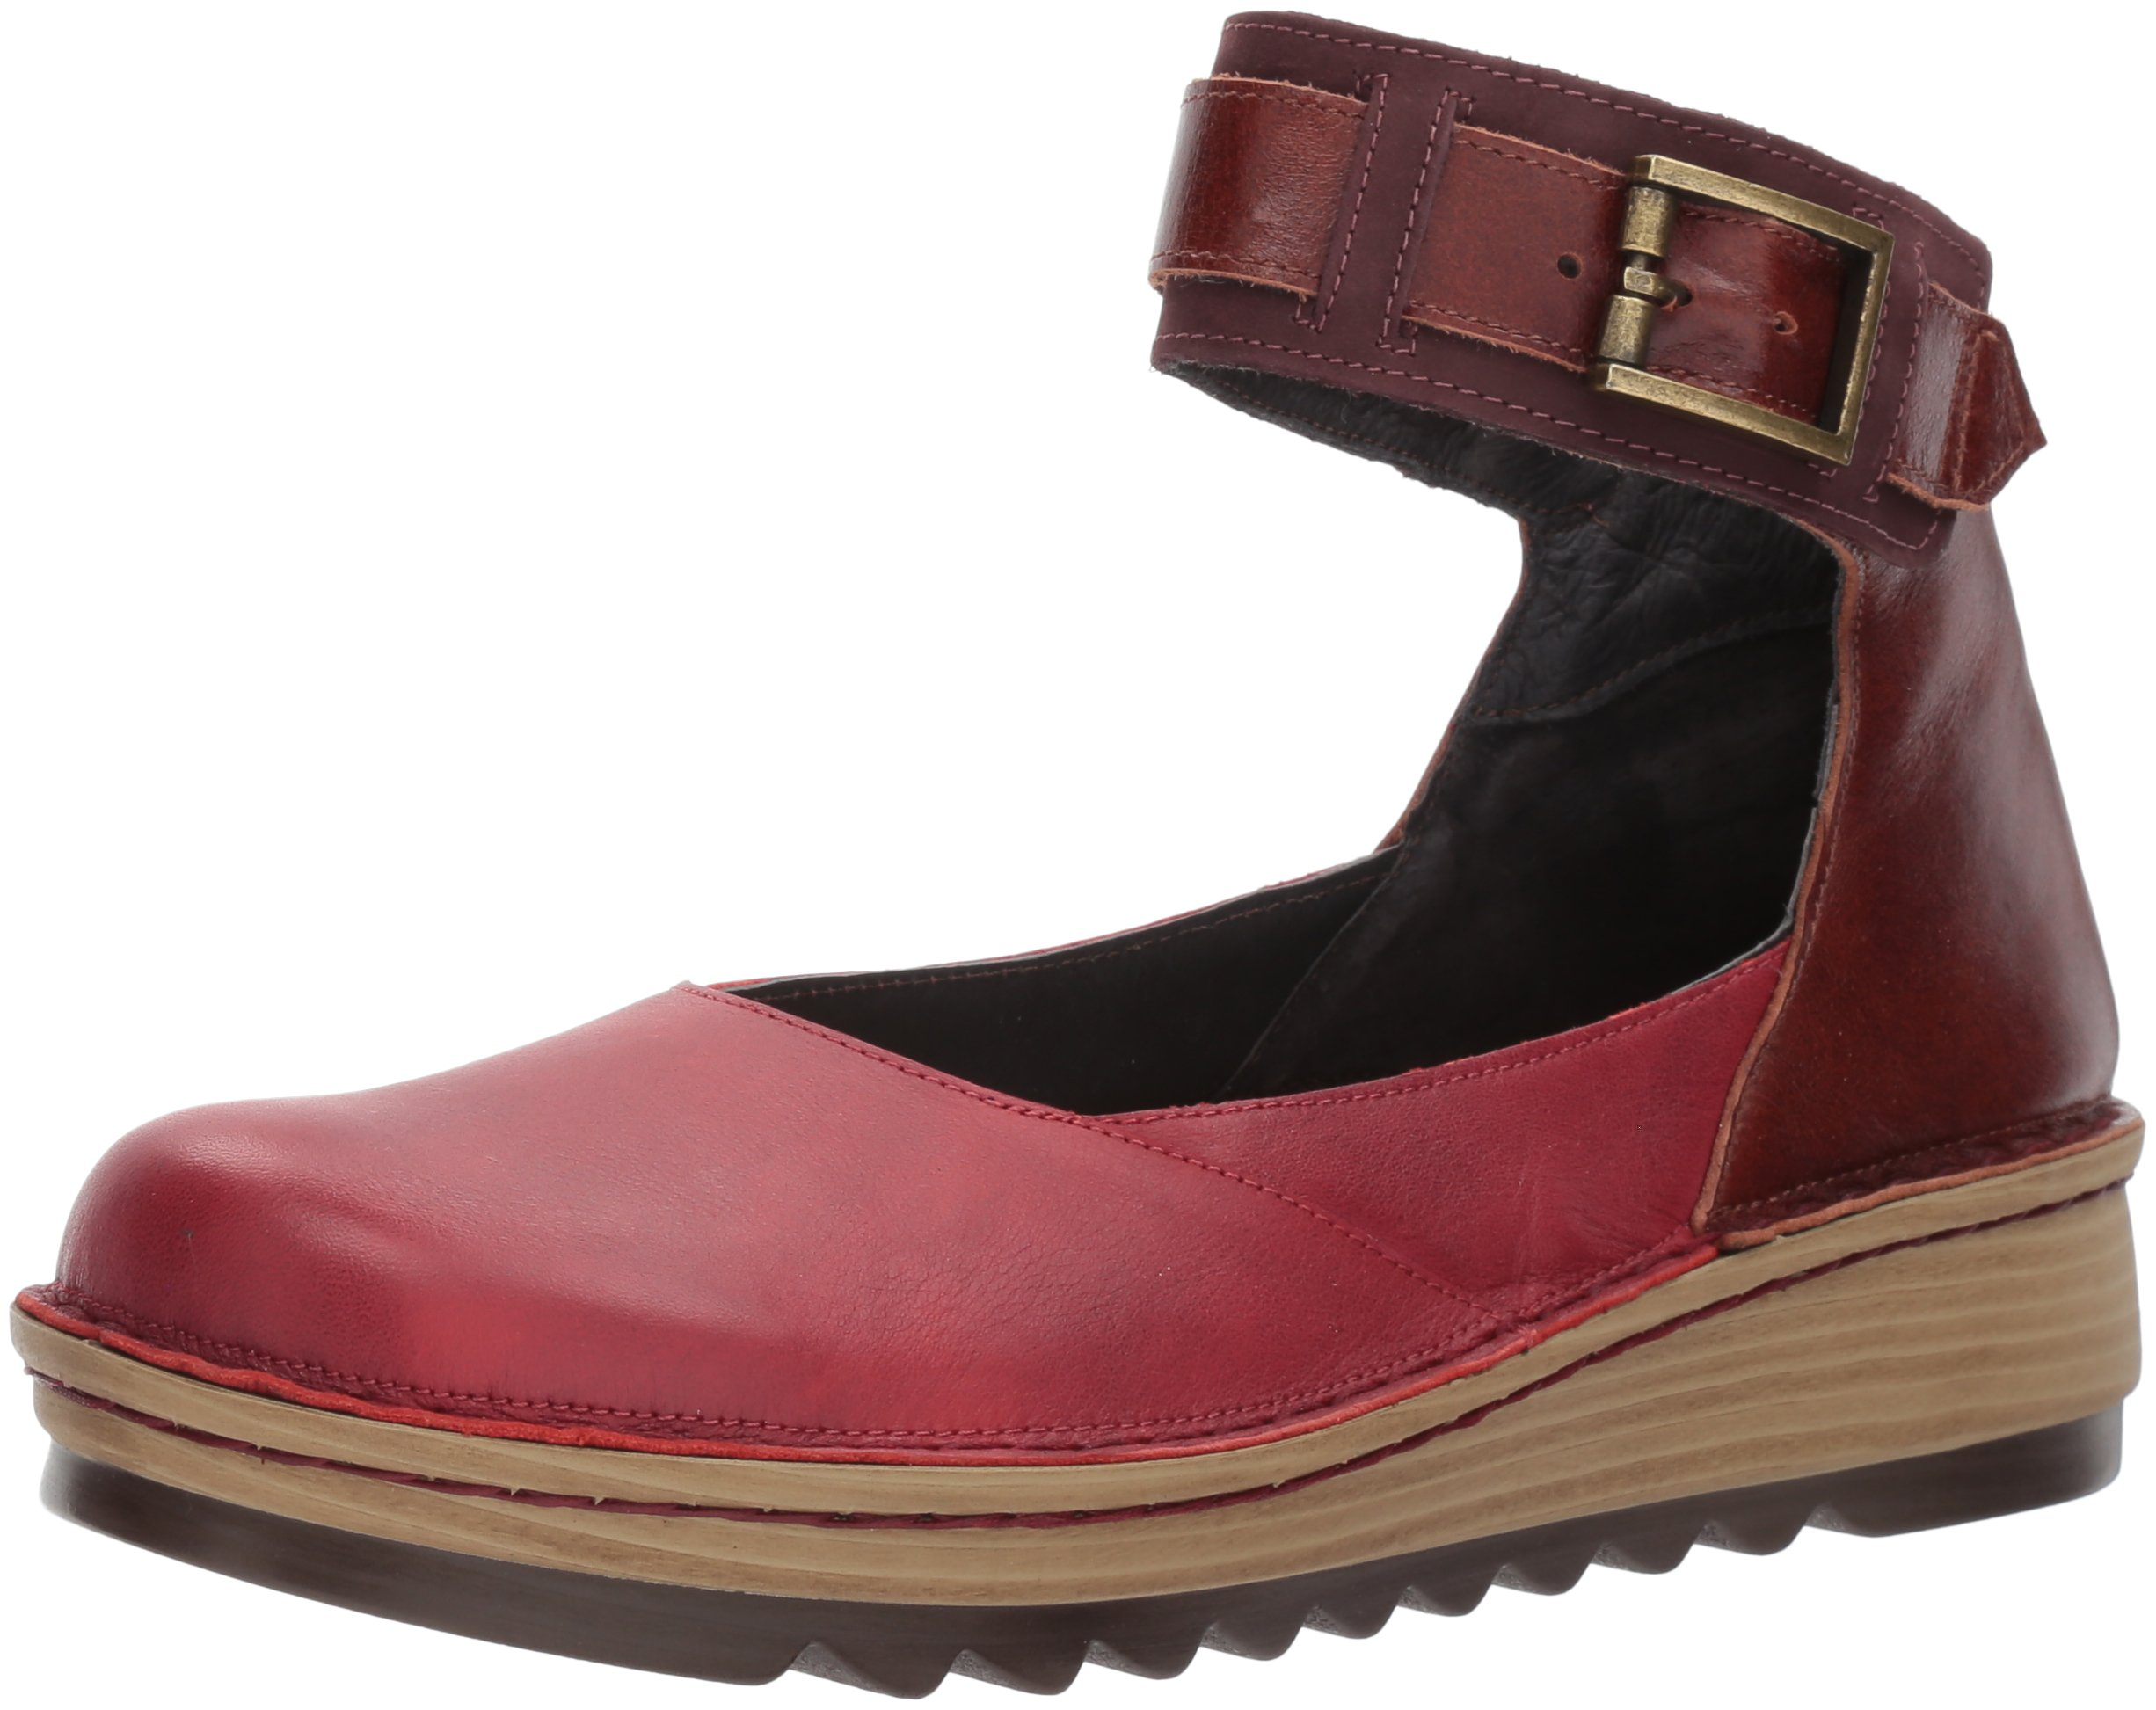 Naot Women's Sycamore Mary Jane Flat, Berry Leather/Luggage Brown Leather/Violet Nubuck, 39 Medium EU (8 US)